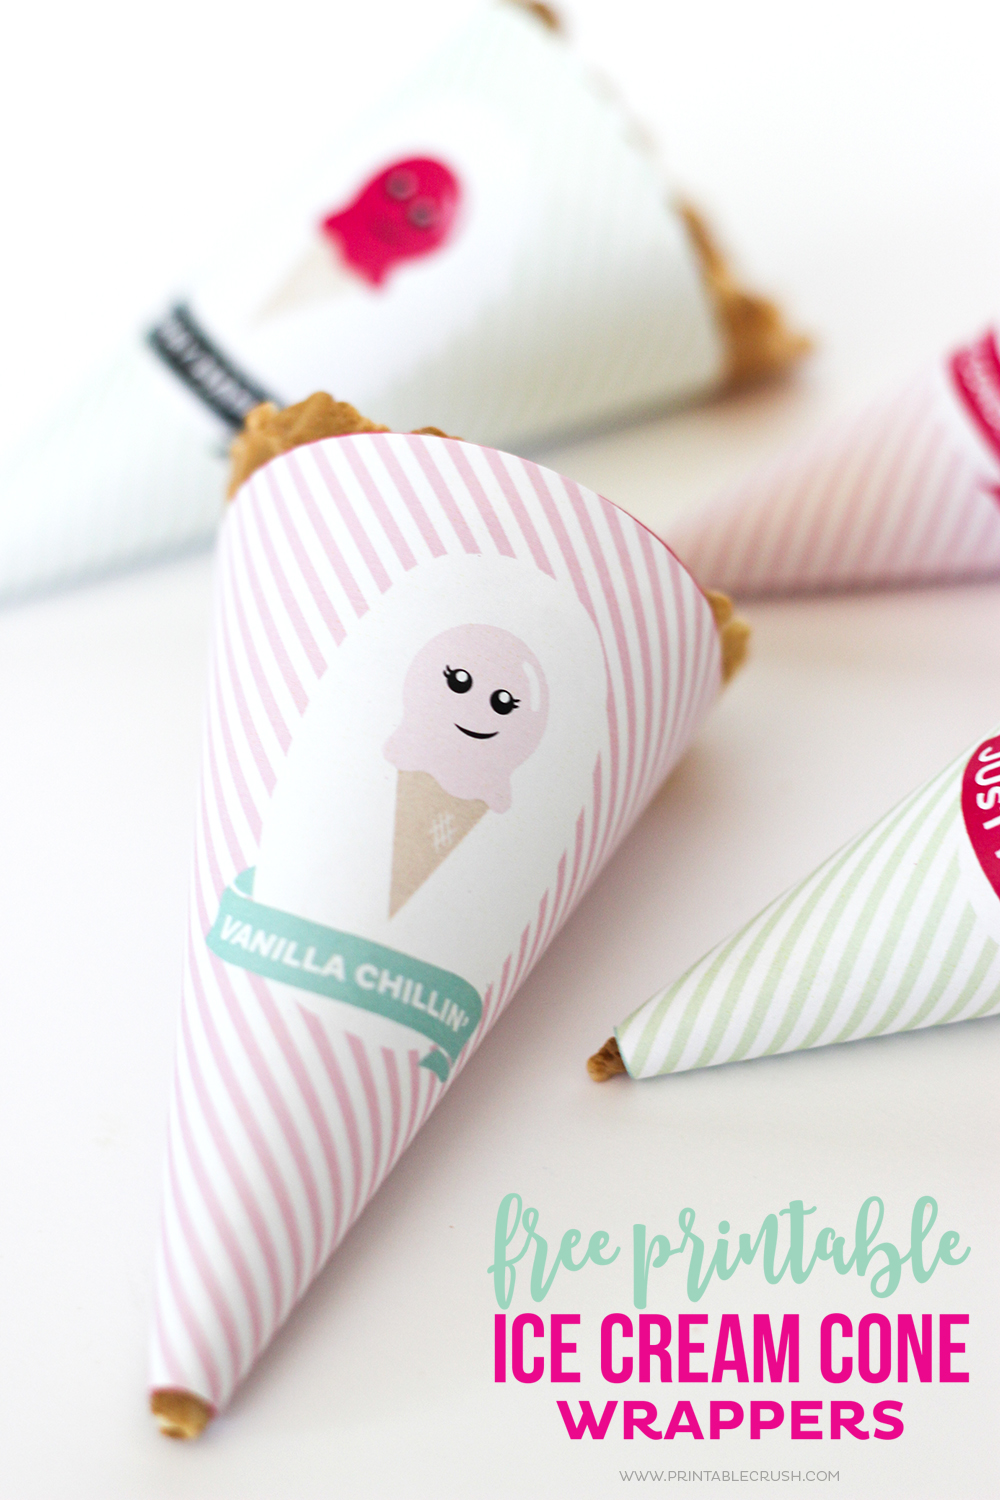 These Printable Ice Cream Cone Wrappers are super cute and easy to make! These have sayings that go with peach, vanilla, berry, and mint flavored ice cream!